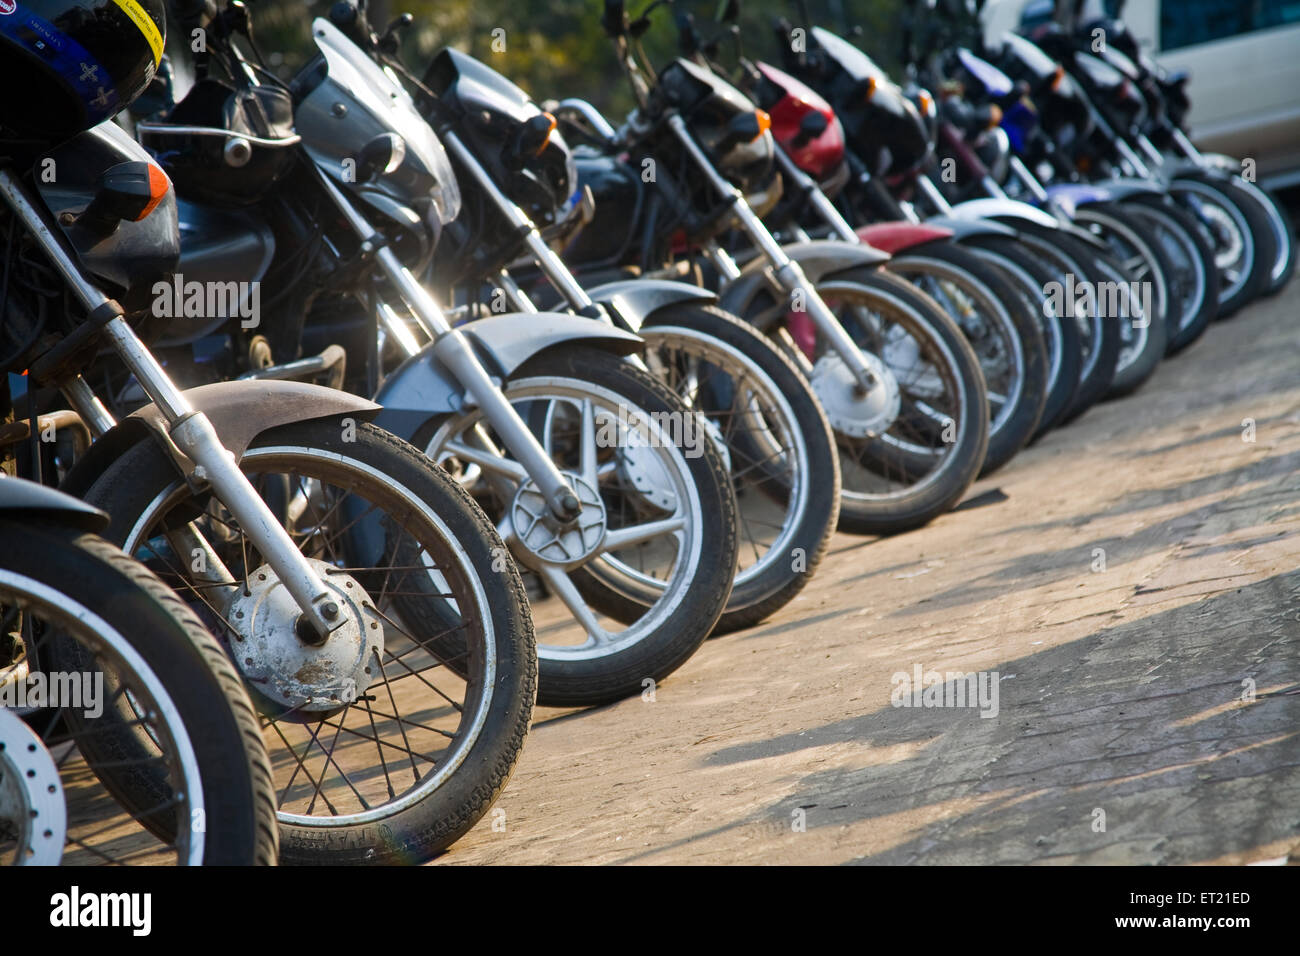 Bike motorcycles parking ; Bombay Mumbai ; Maharashtra ; India 29 January 2010 - Stock Image